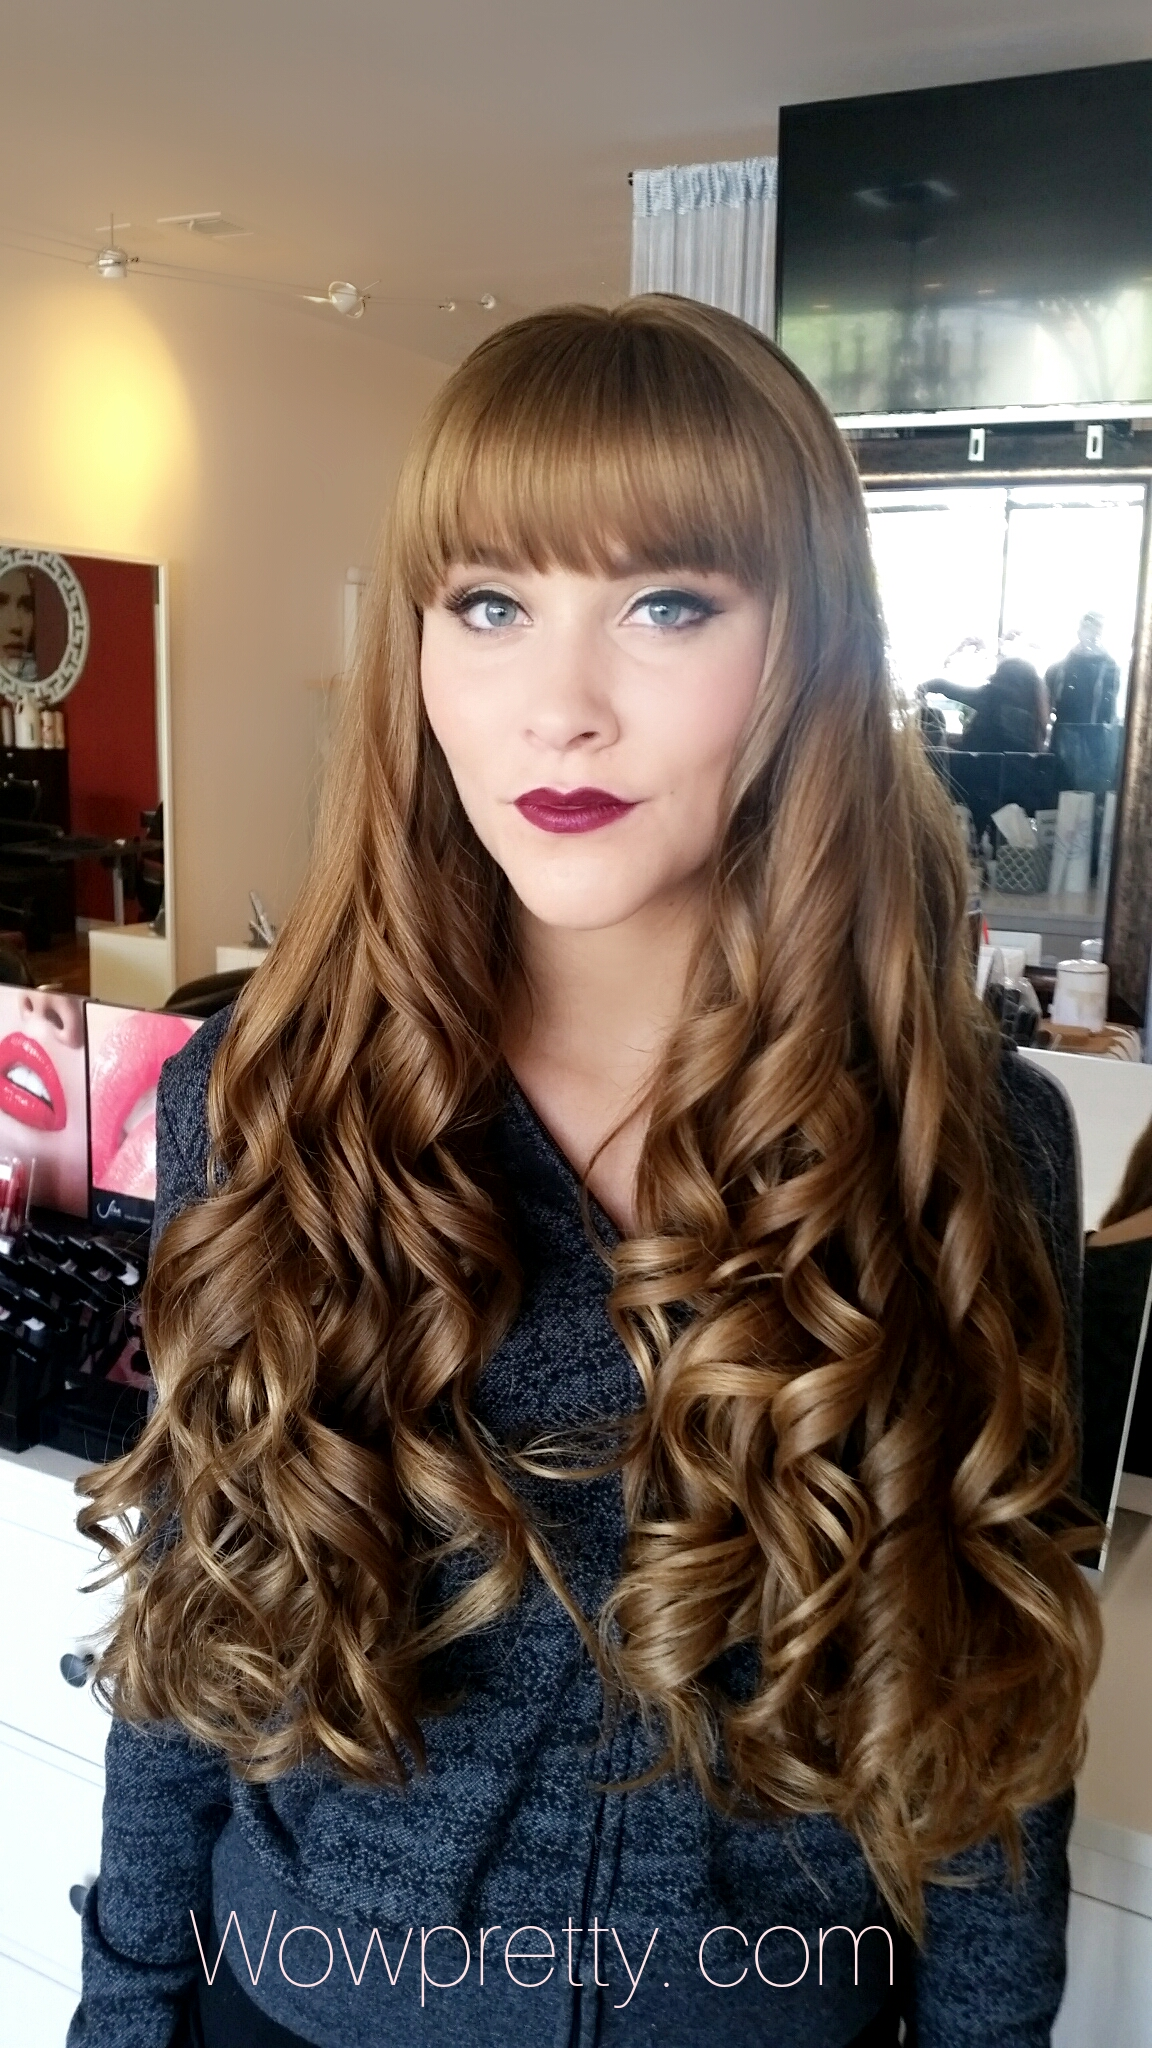 prom-makeup-and-hair_26885654296_o.jpg